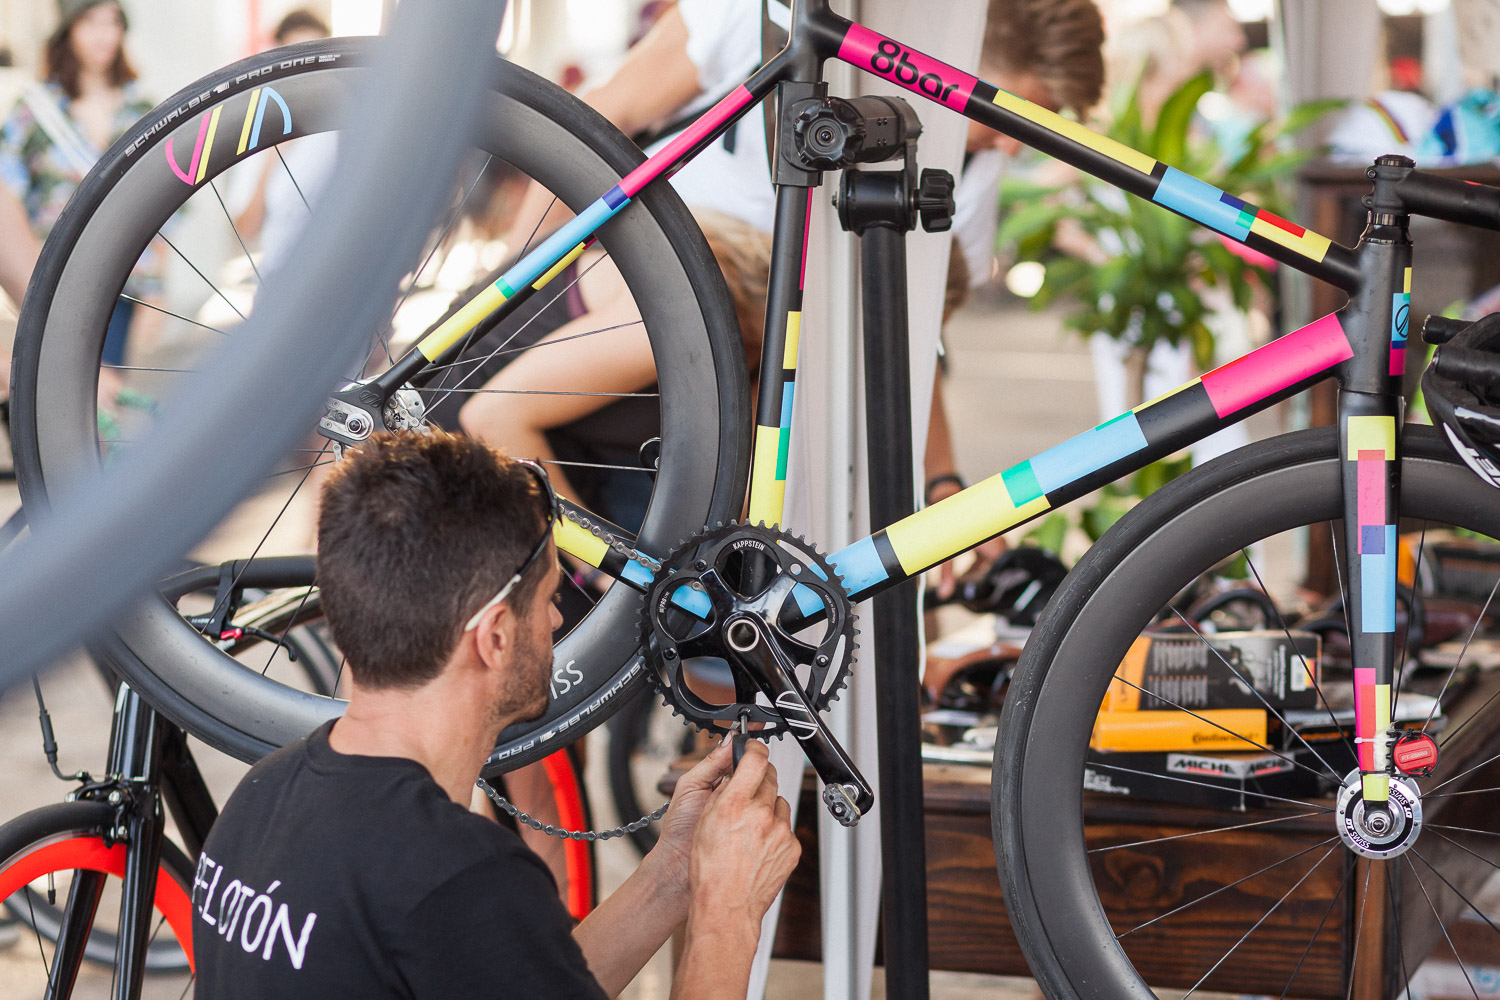 8bar-team-red-hook-crit-barcelona-fixie-fixed-gear-149